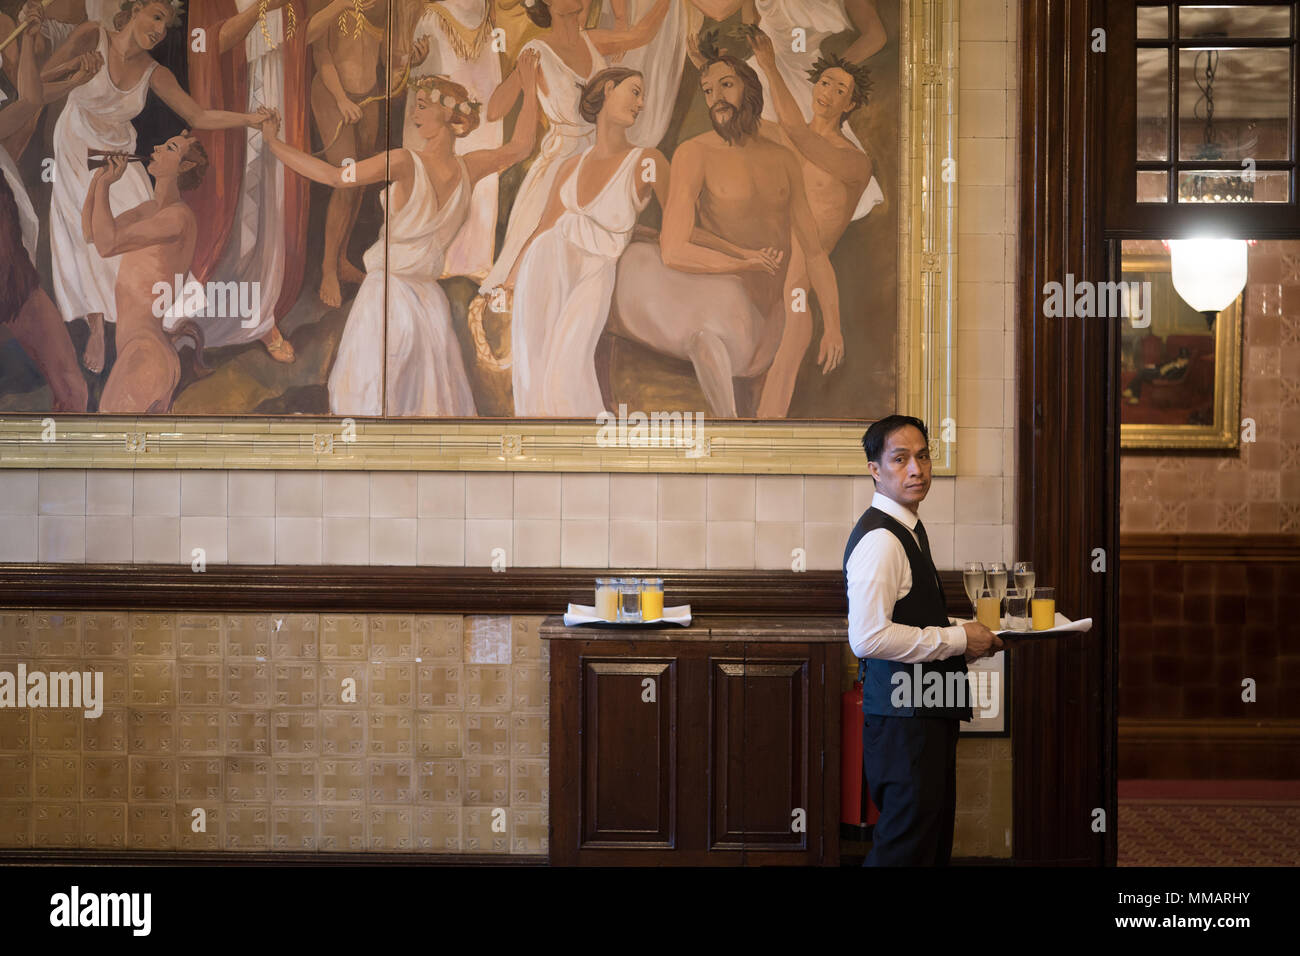 A waiter serving drinks in the dining room on the third floor of the National Liberal Club at 1 Whitehall Place in Westminster, London. Photo date: Sa - Stock Image